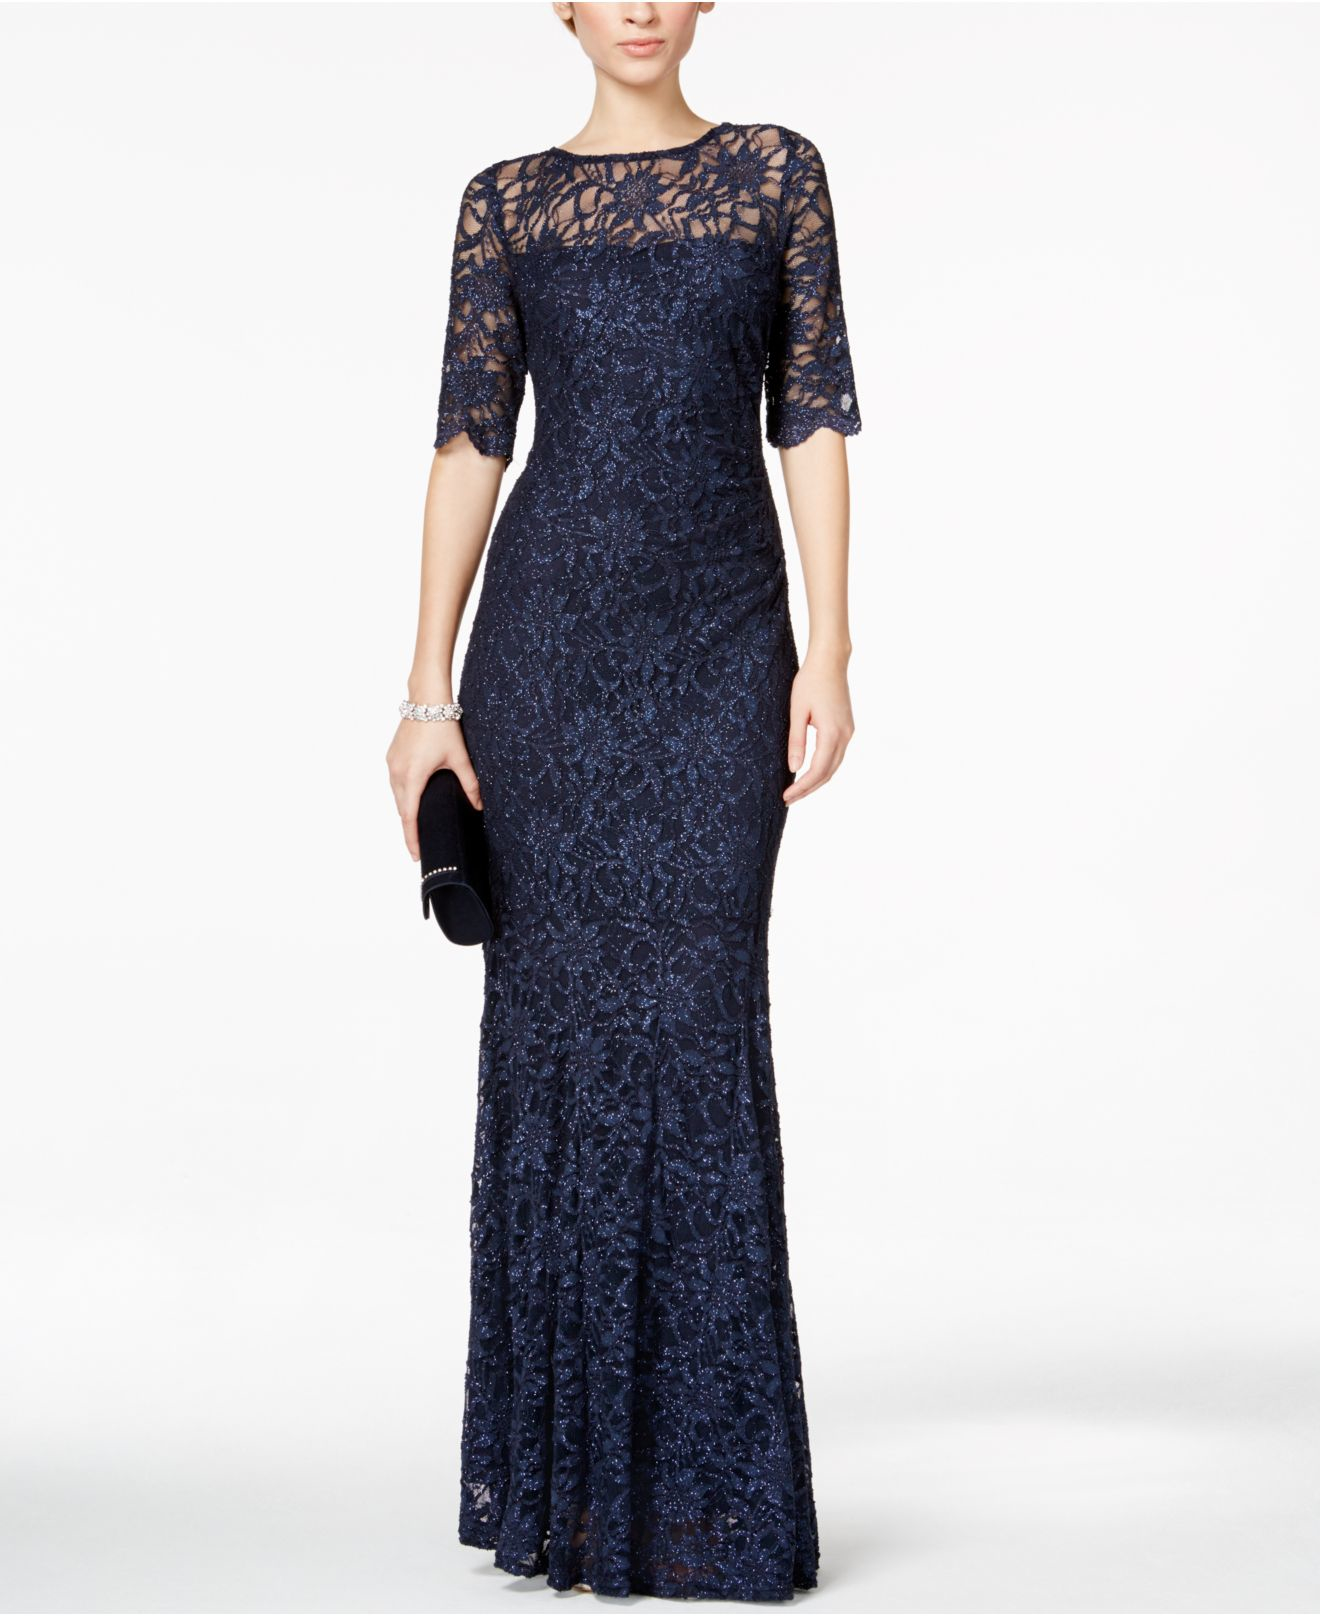 Lyst - Xscape Lace Shimmer Mermaid Gown in Blue